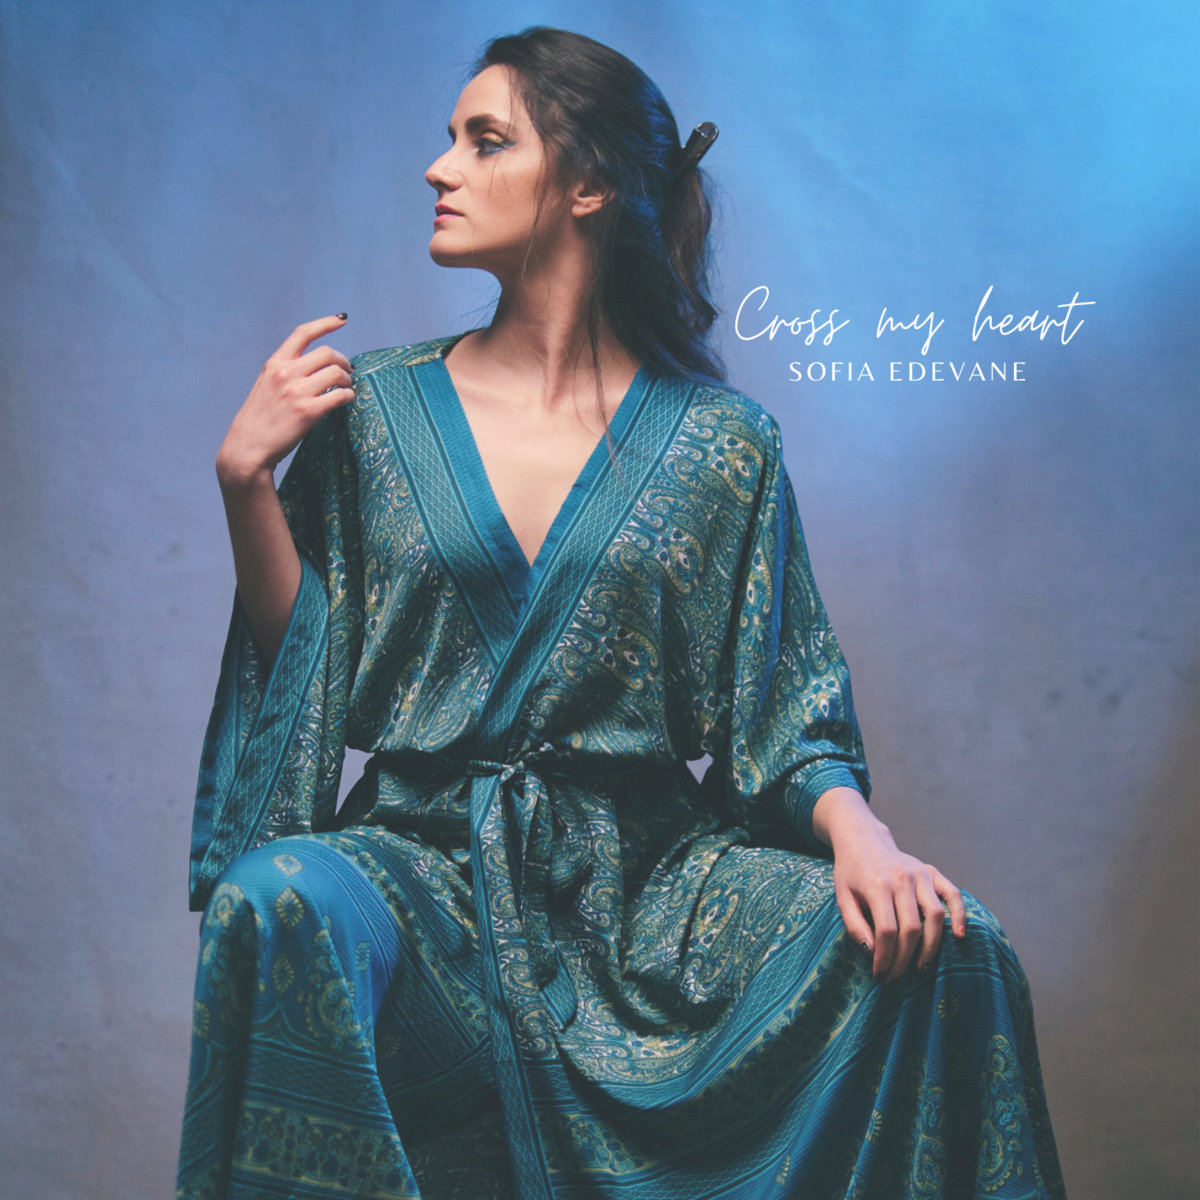 Cover art for Sofia's EP. Sofia sits poised against a blue background, wearing a green and gold gown. She has her right arm against her shoulder and she looks off to the right.'